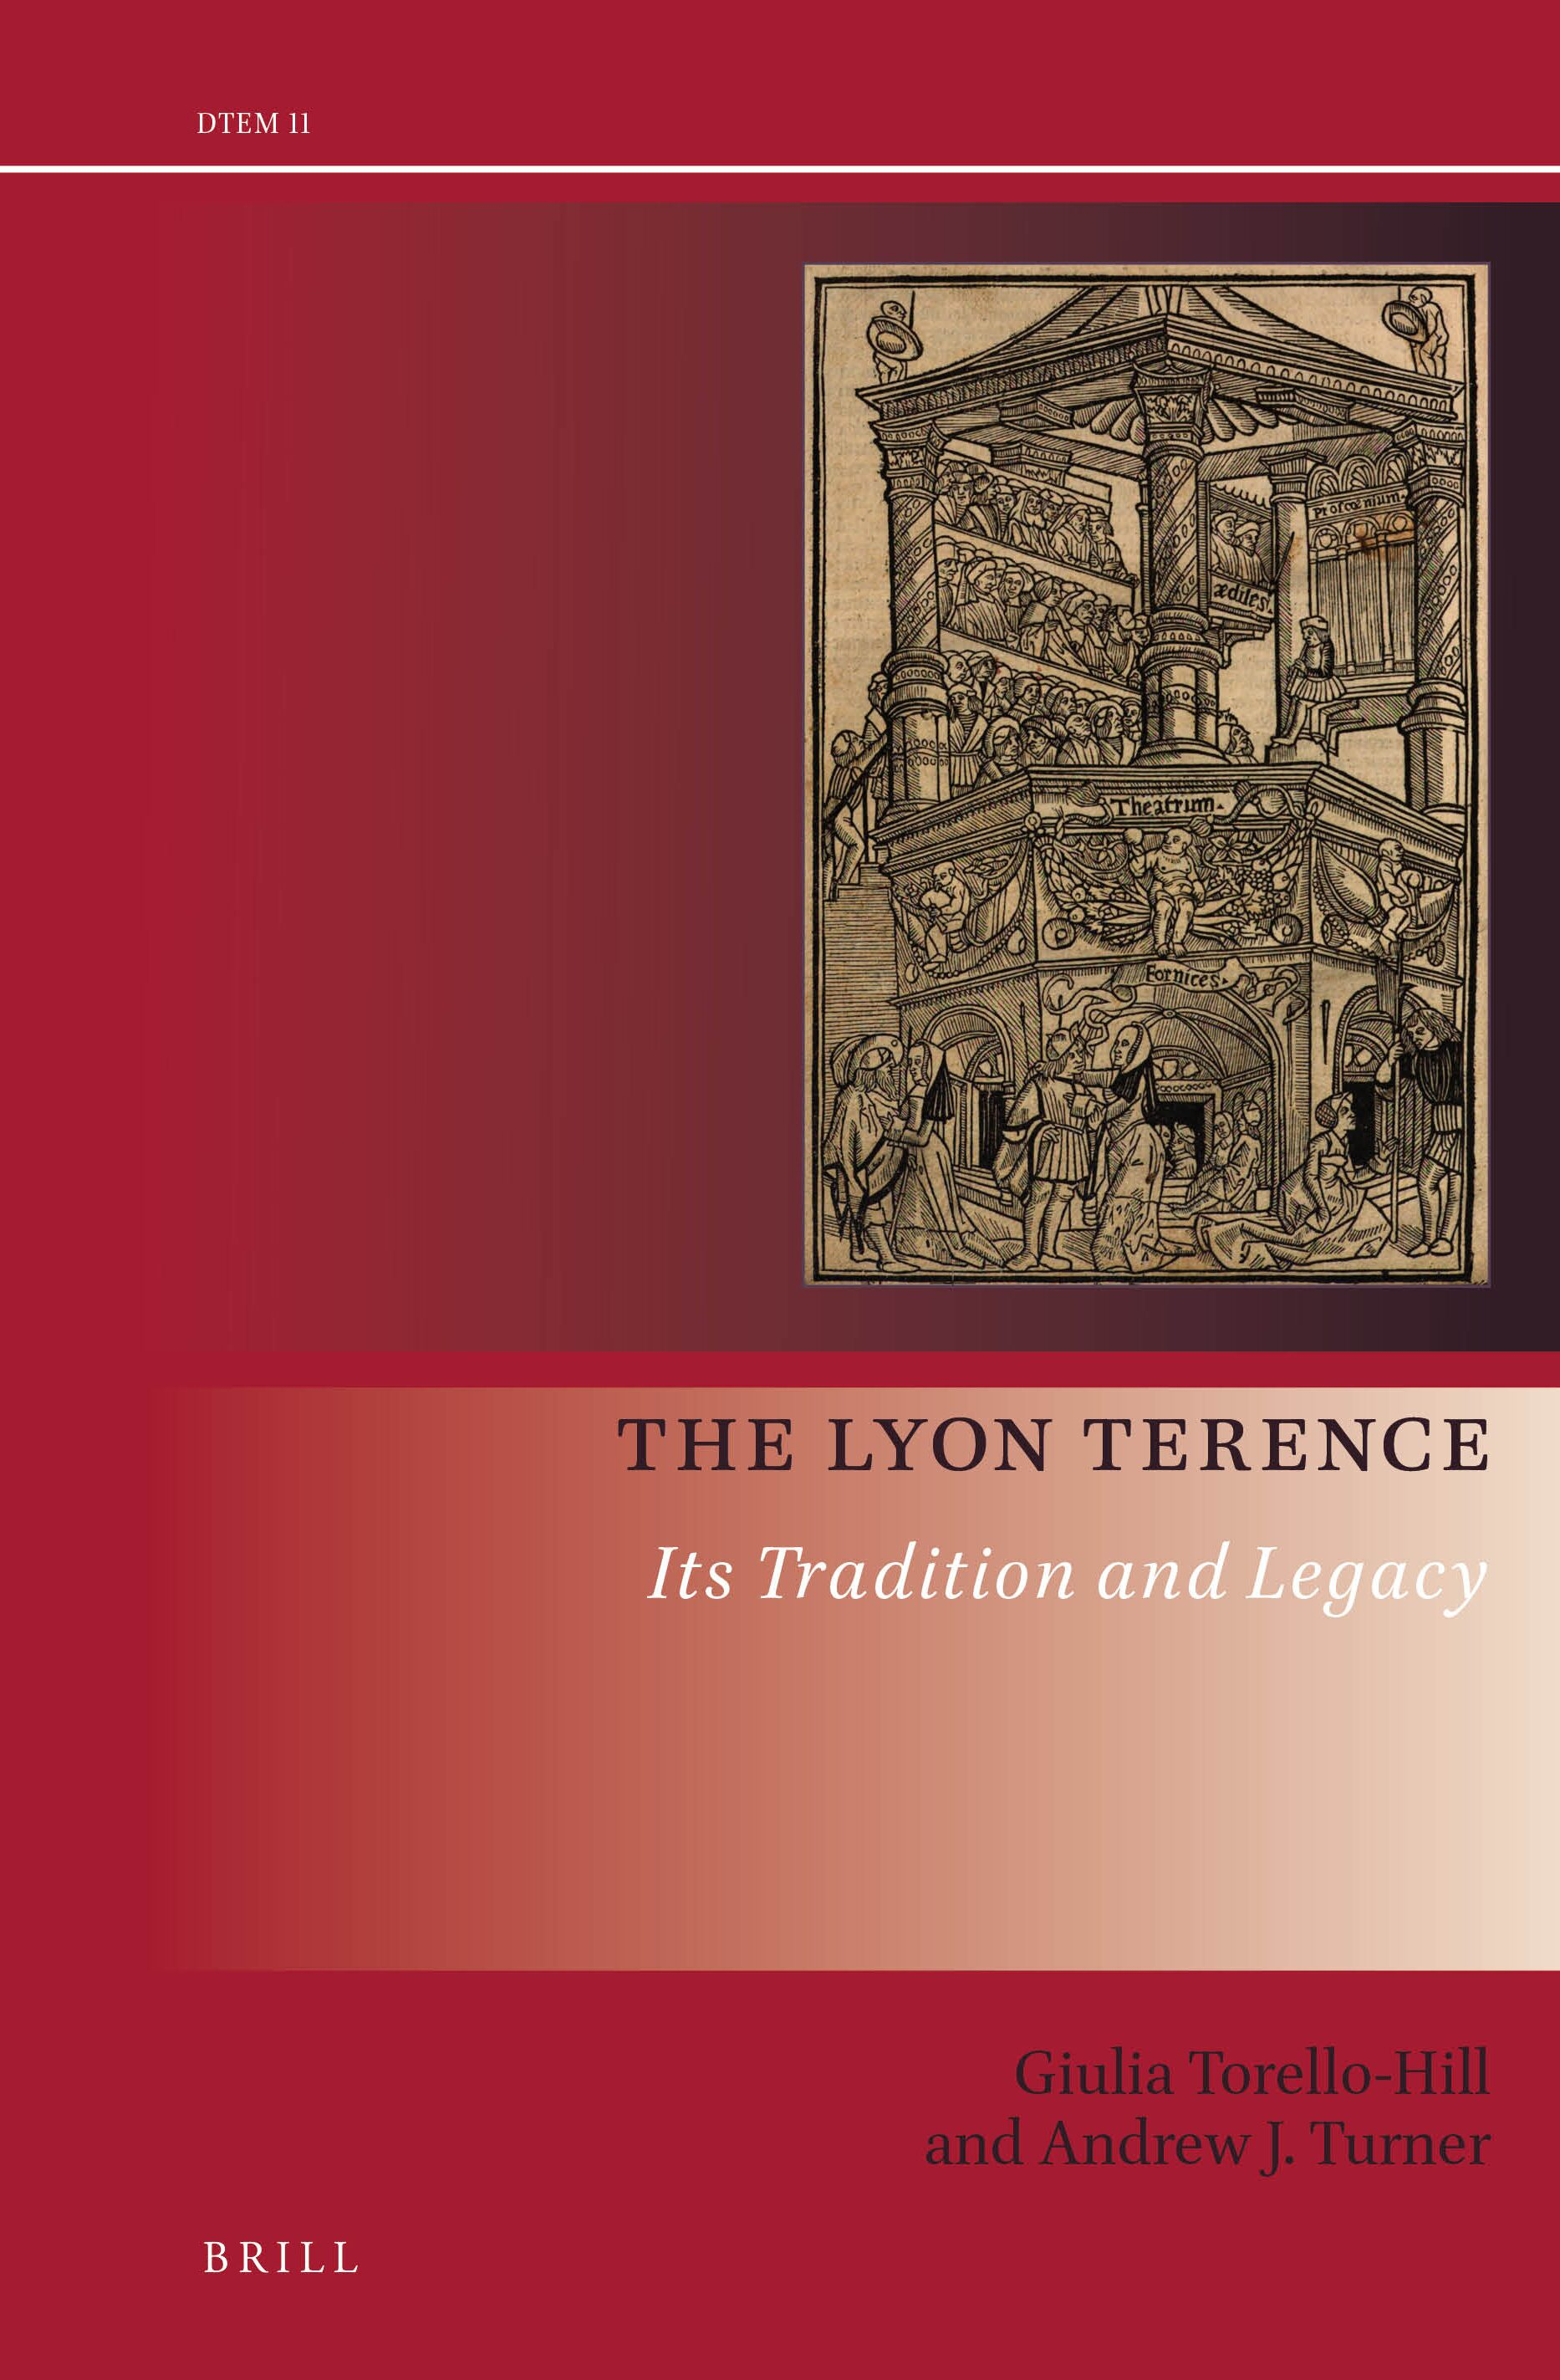 Società anonima maioliche zulimo aretini; Chapter 6 The Theatricality Of The Lyon Terence In The Lyon Terence